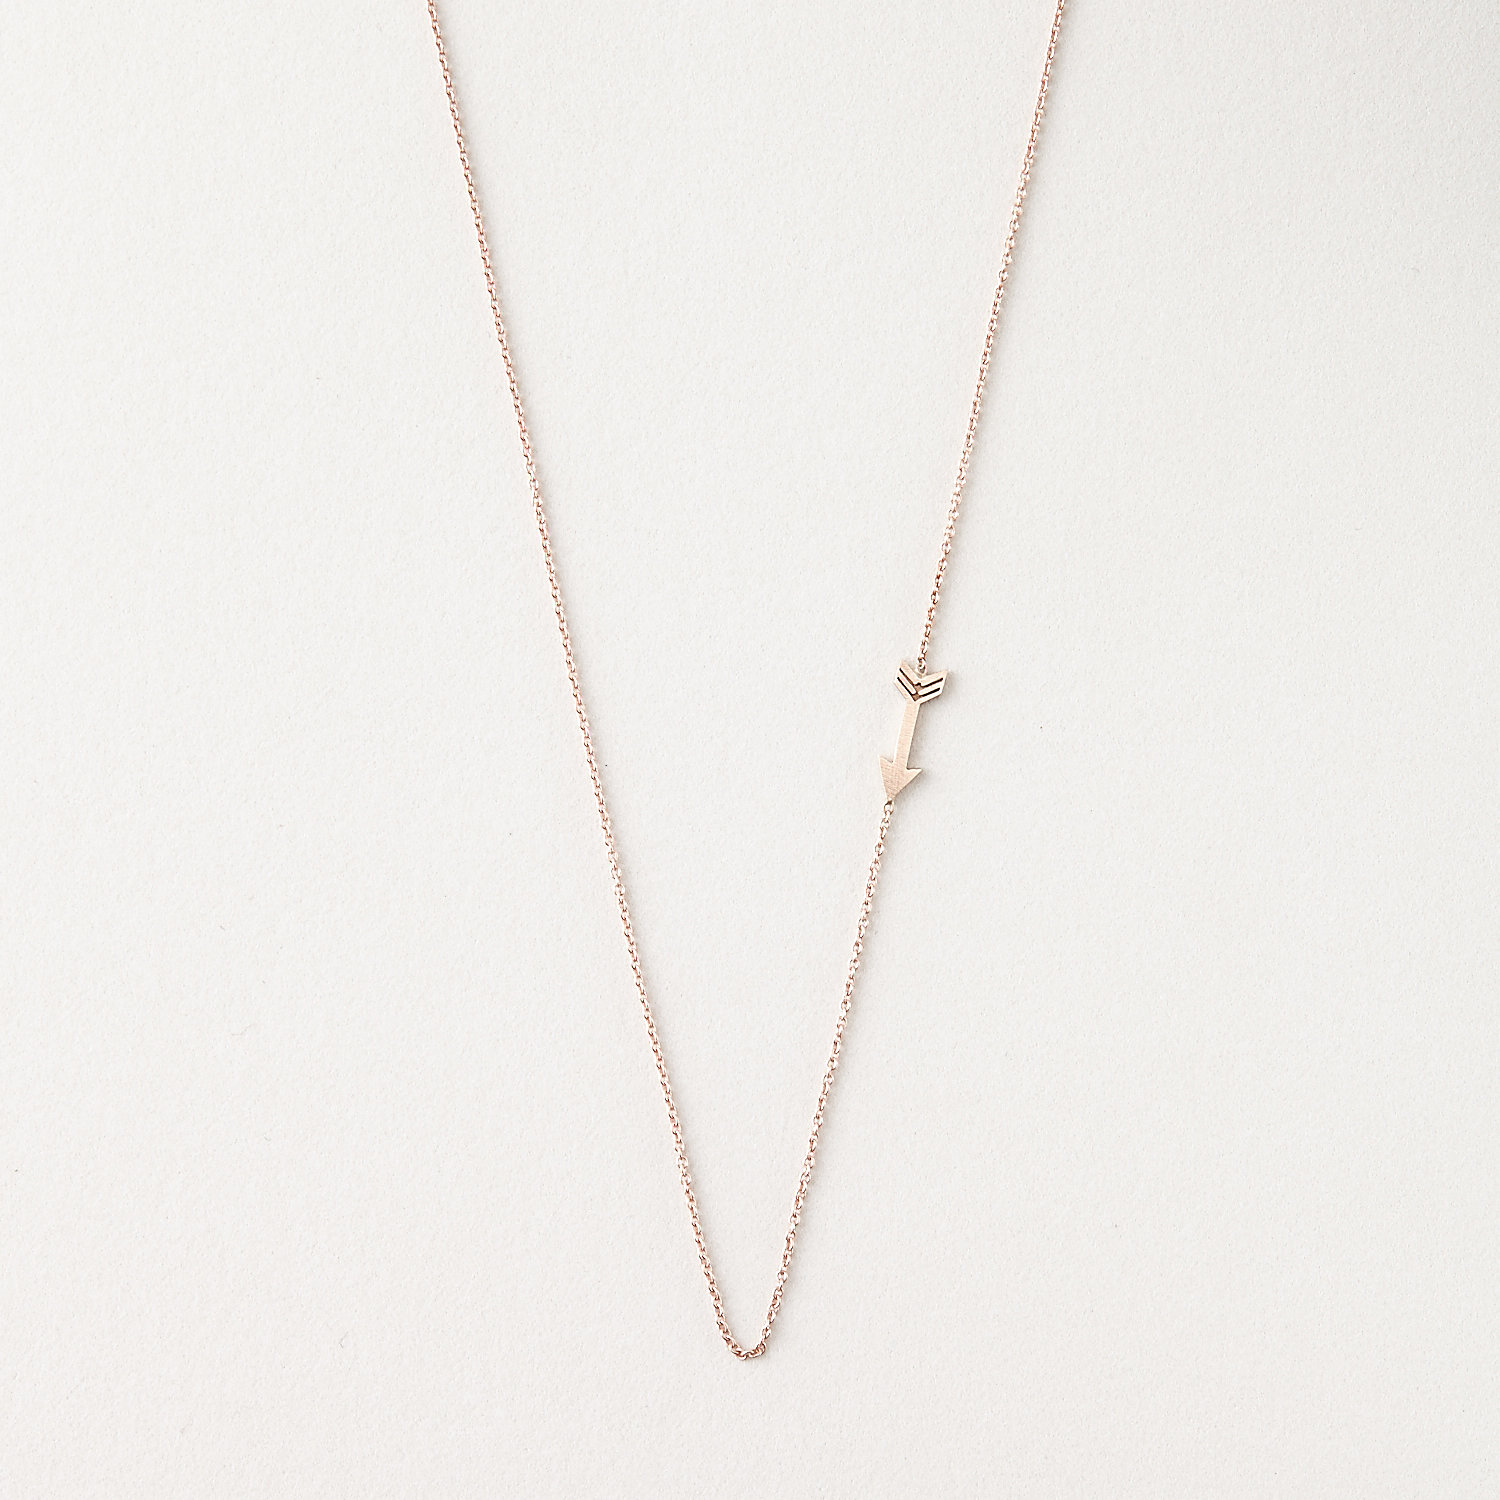 CUPID ARROW NECKLACE